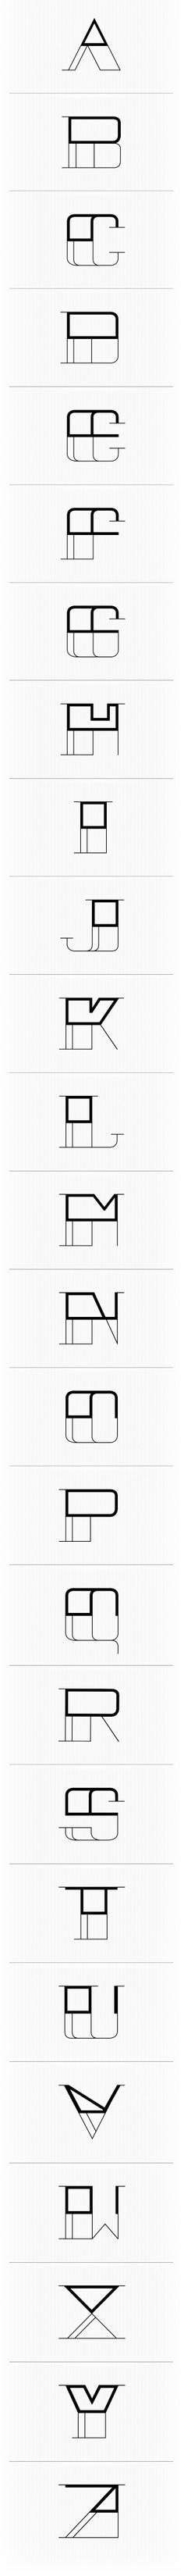 MODERN Typeface by Conner Smith, via Behance